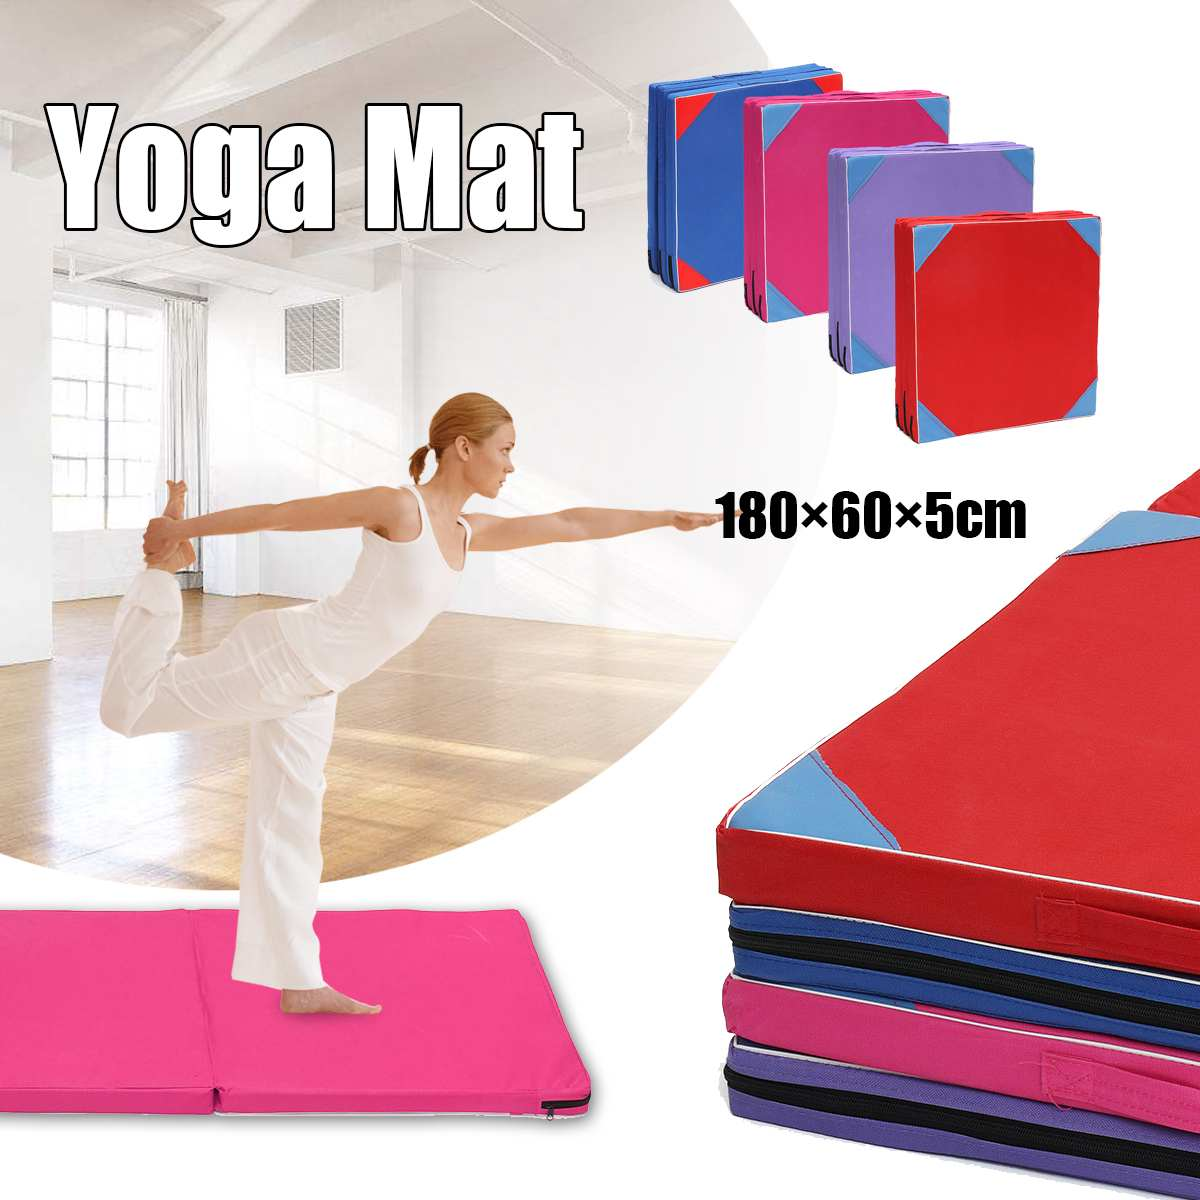 180x60x5 cm Pliage Tapis De Gymnastique Gymnastique Au Sol Tapis De Yoga Exercice Fitness Pilates Gym Exercice de Pique-Nique Pliante tapis Gym Yoga